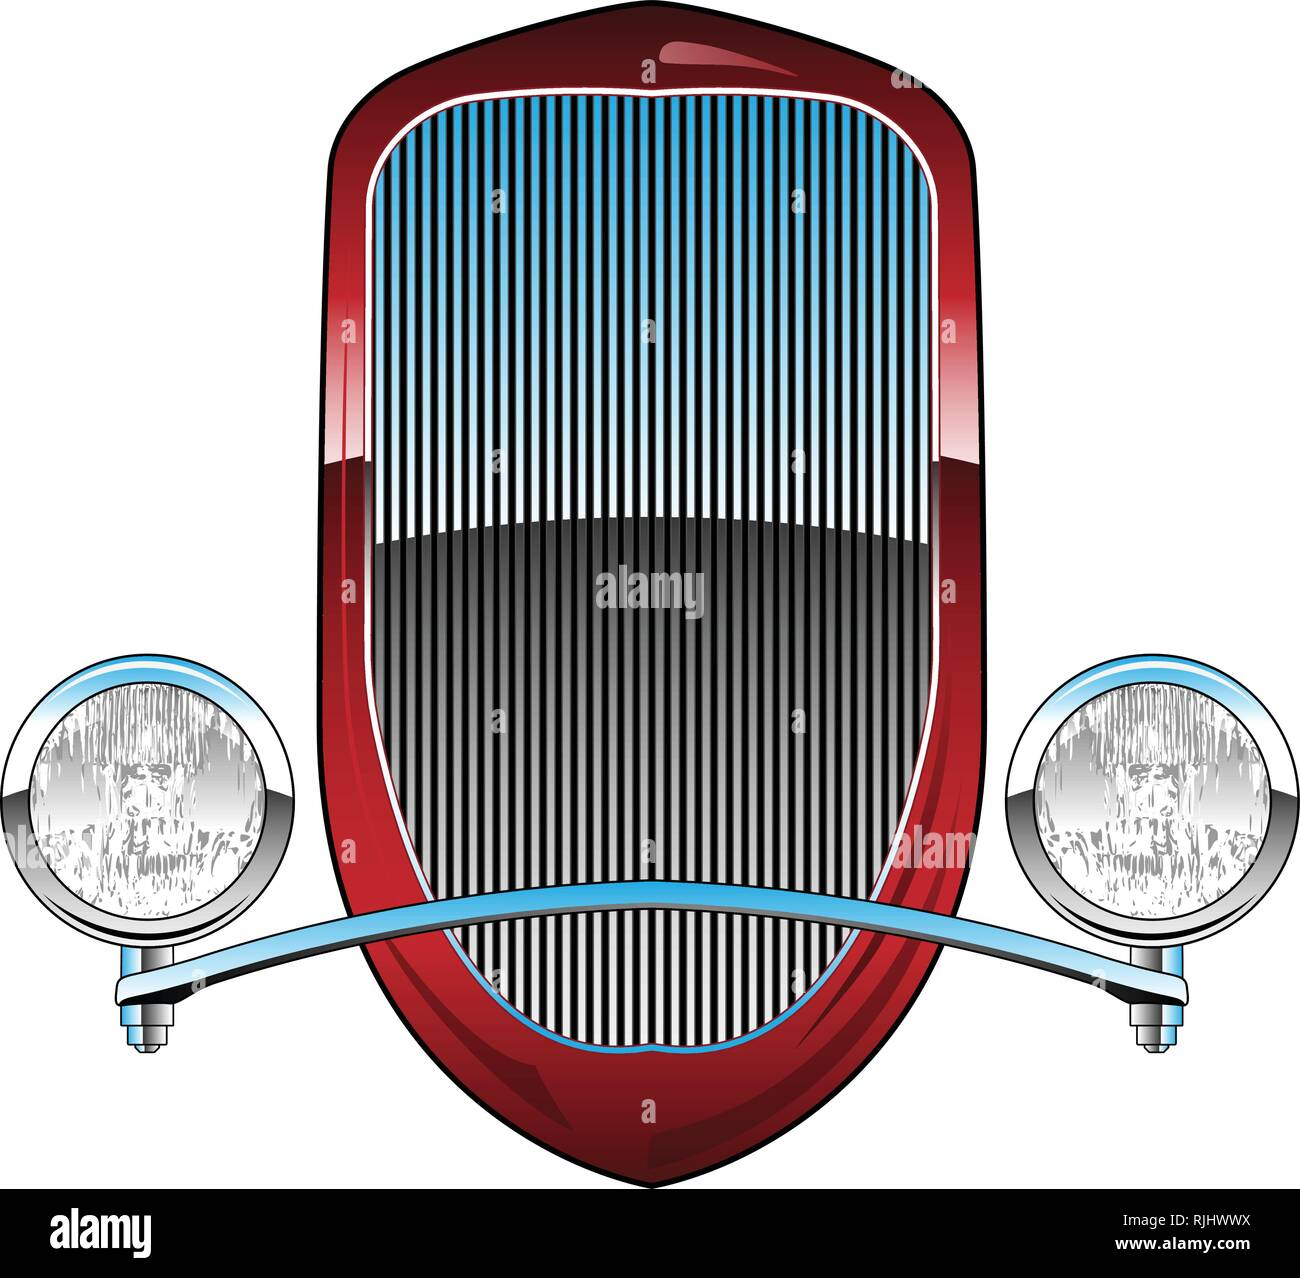 1930s Style Hot Rod Car Grill with Headlights and Chrome Trim Vector Illustration - Stock Vector